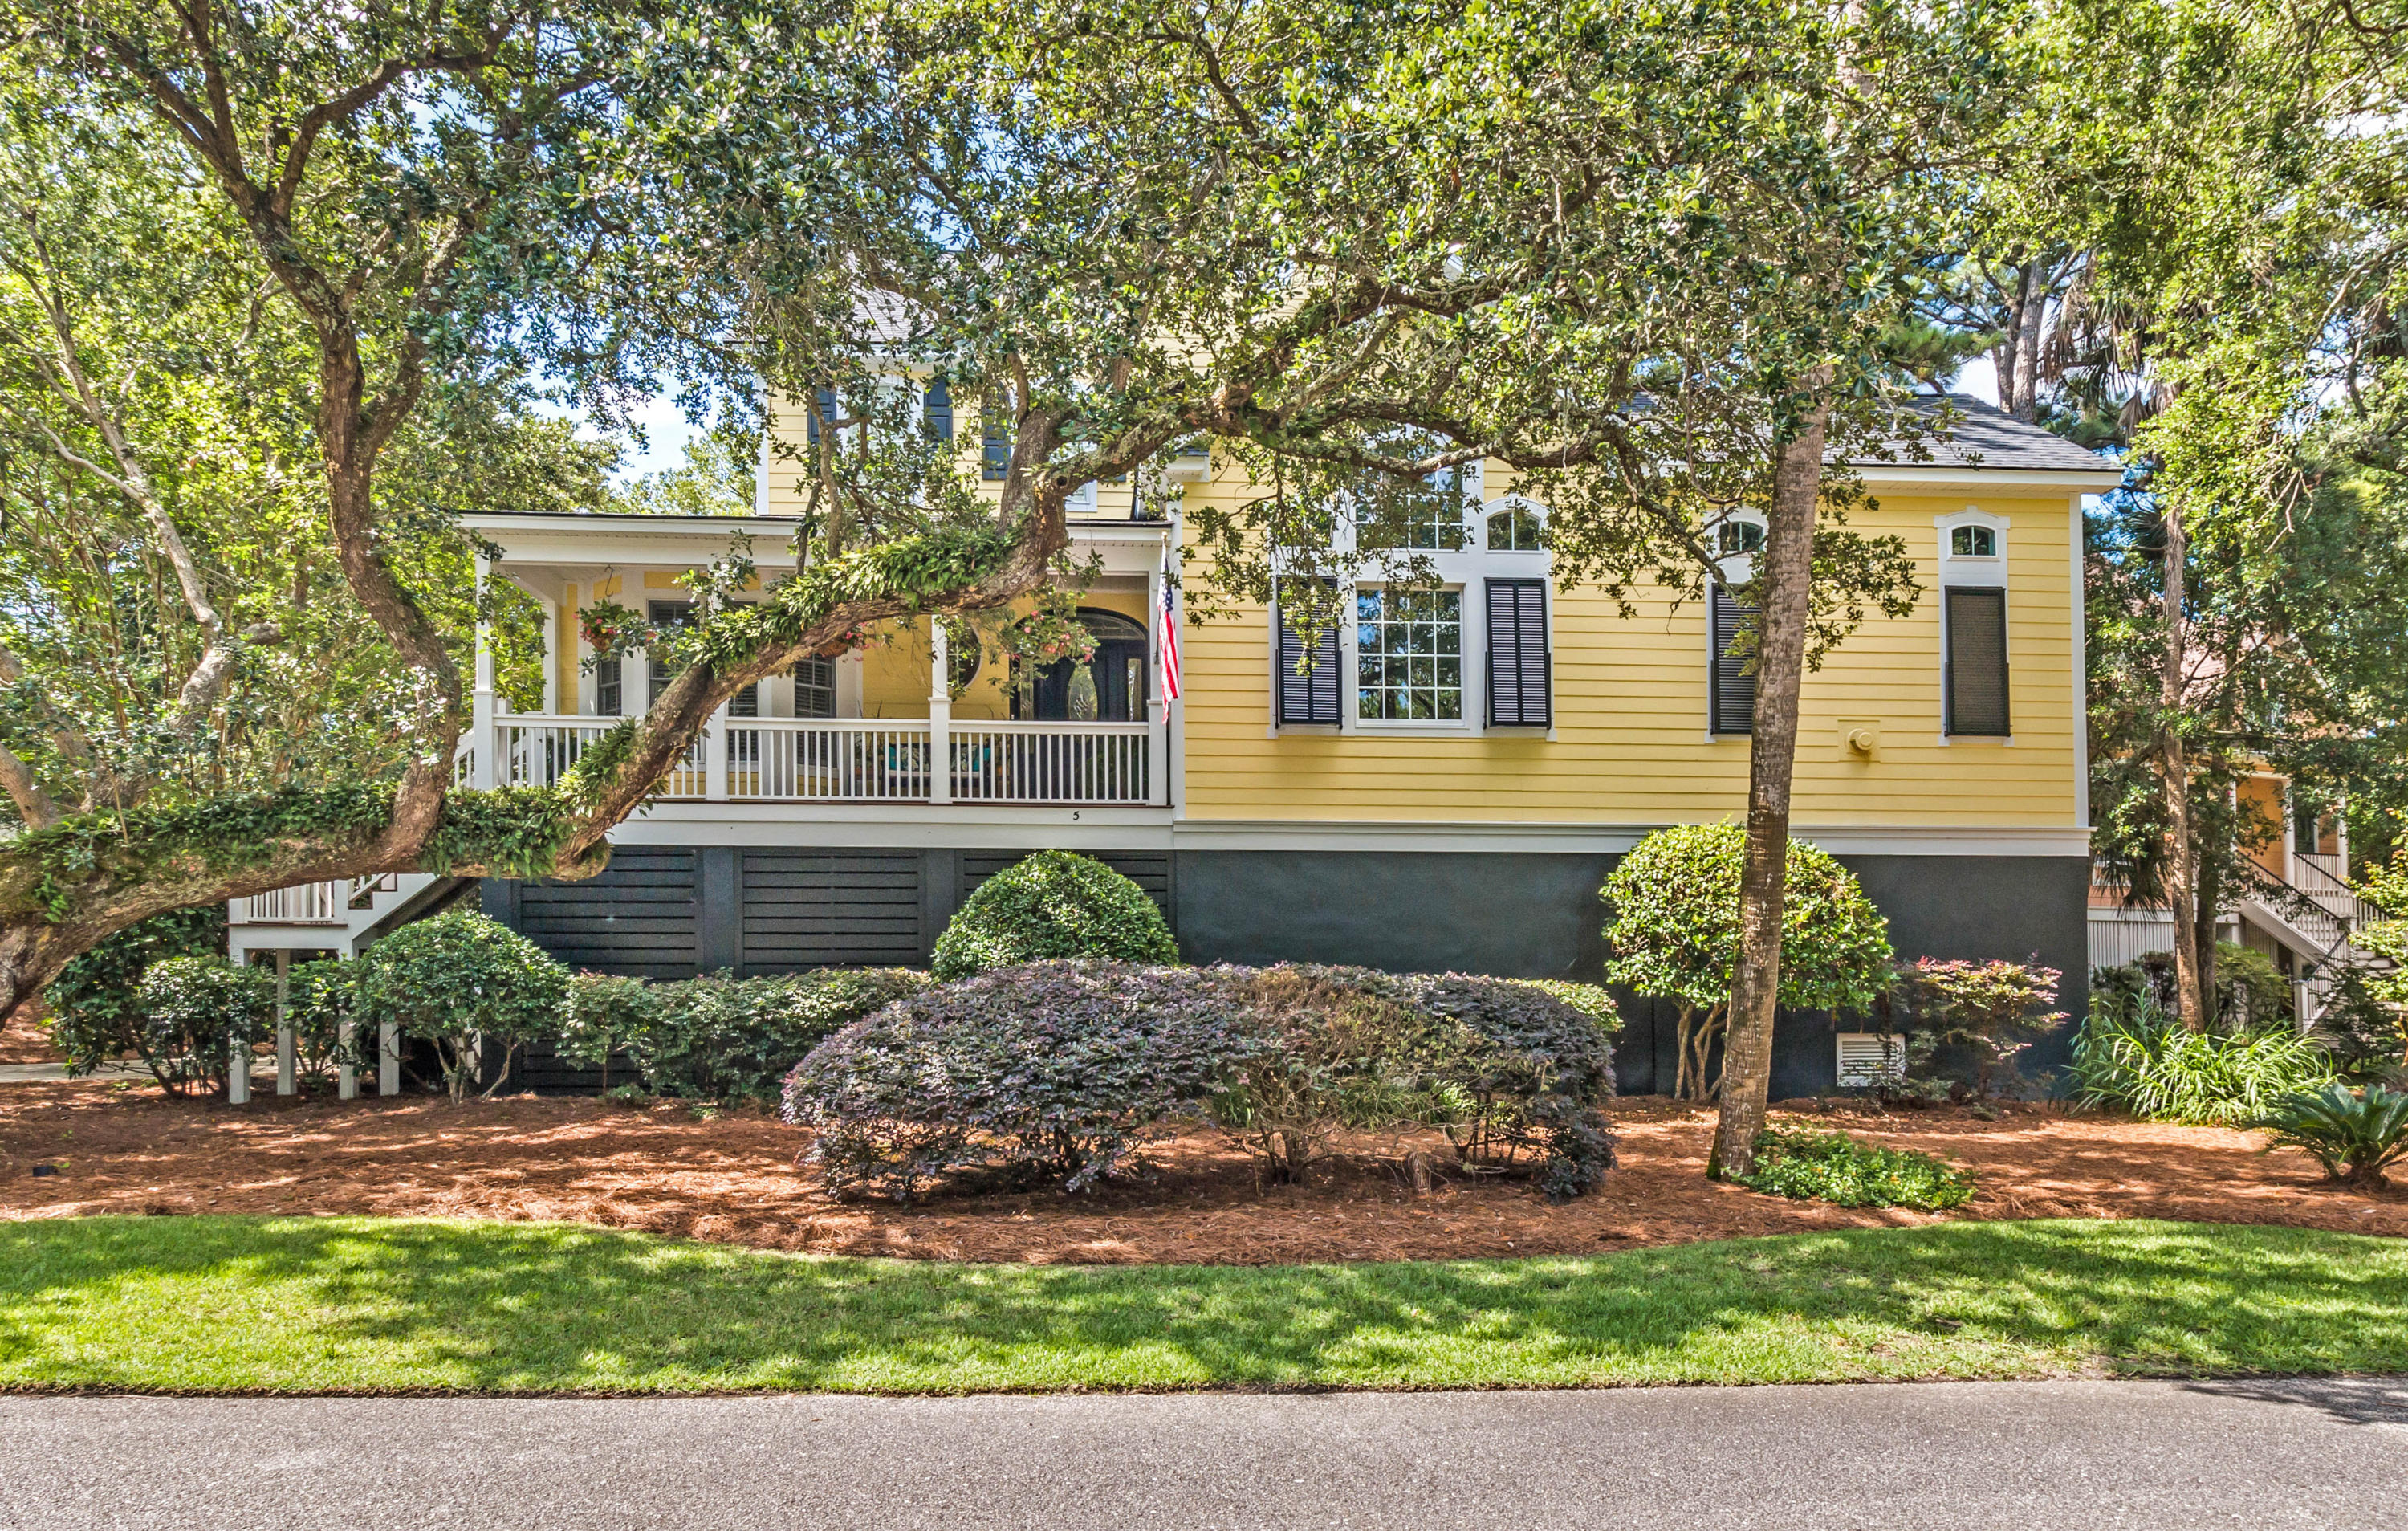 Photo of 5 Sandwedge Ln, Isle of Palms, SC 29451